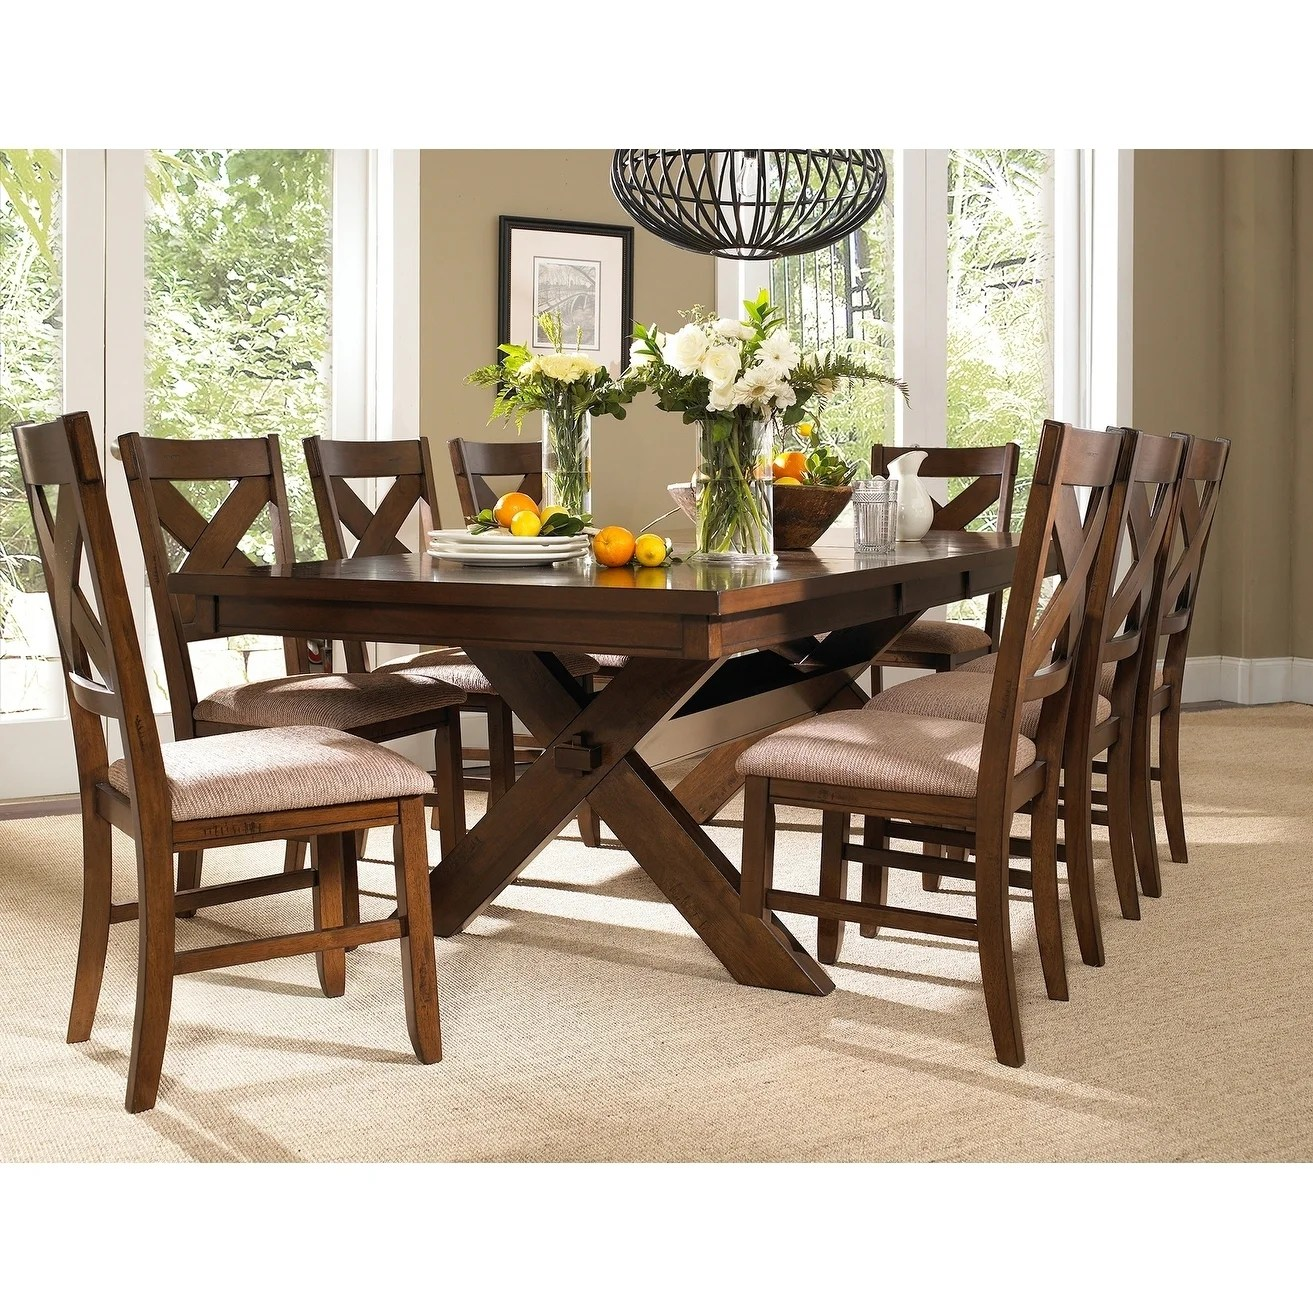 Kitchen Chairs Wood 9 Piece Solid Wood Dining Set With Table And 8 Chairs